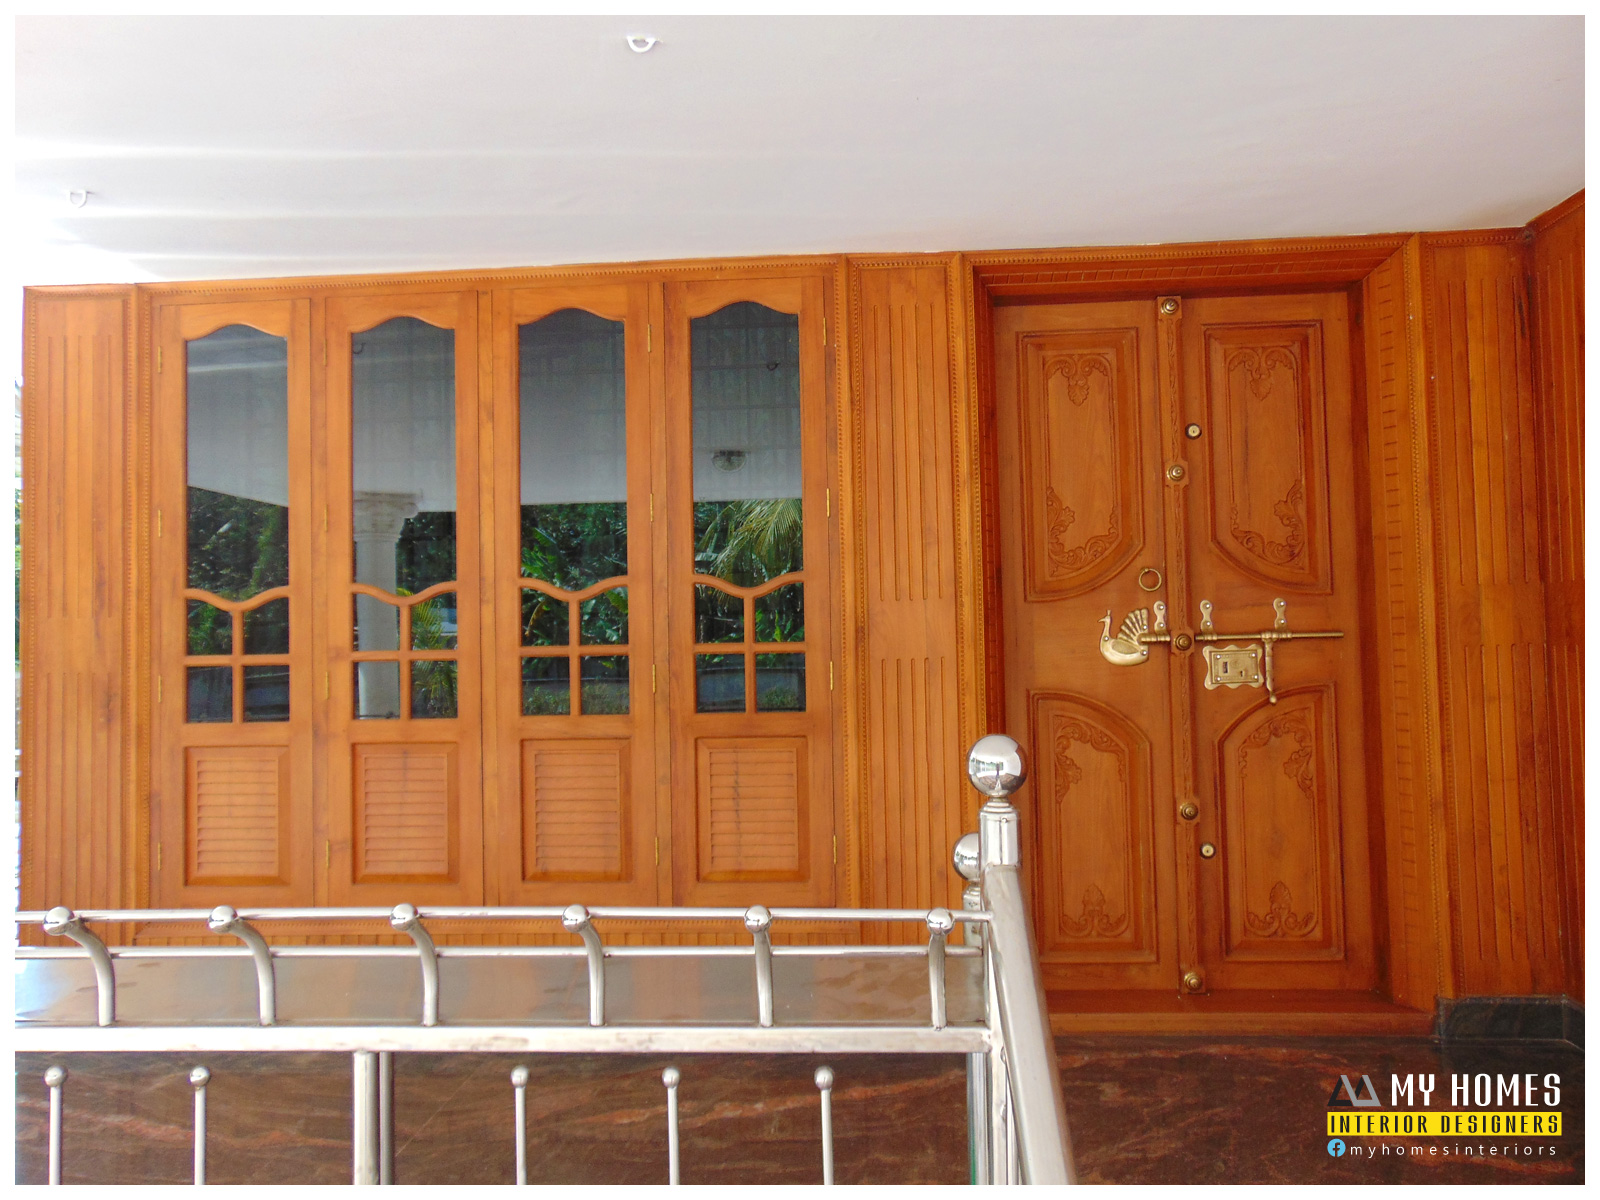 Kerala interior design ideas from designing company thrissur for Interior house doors designs